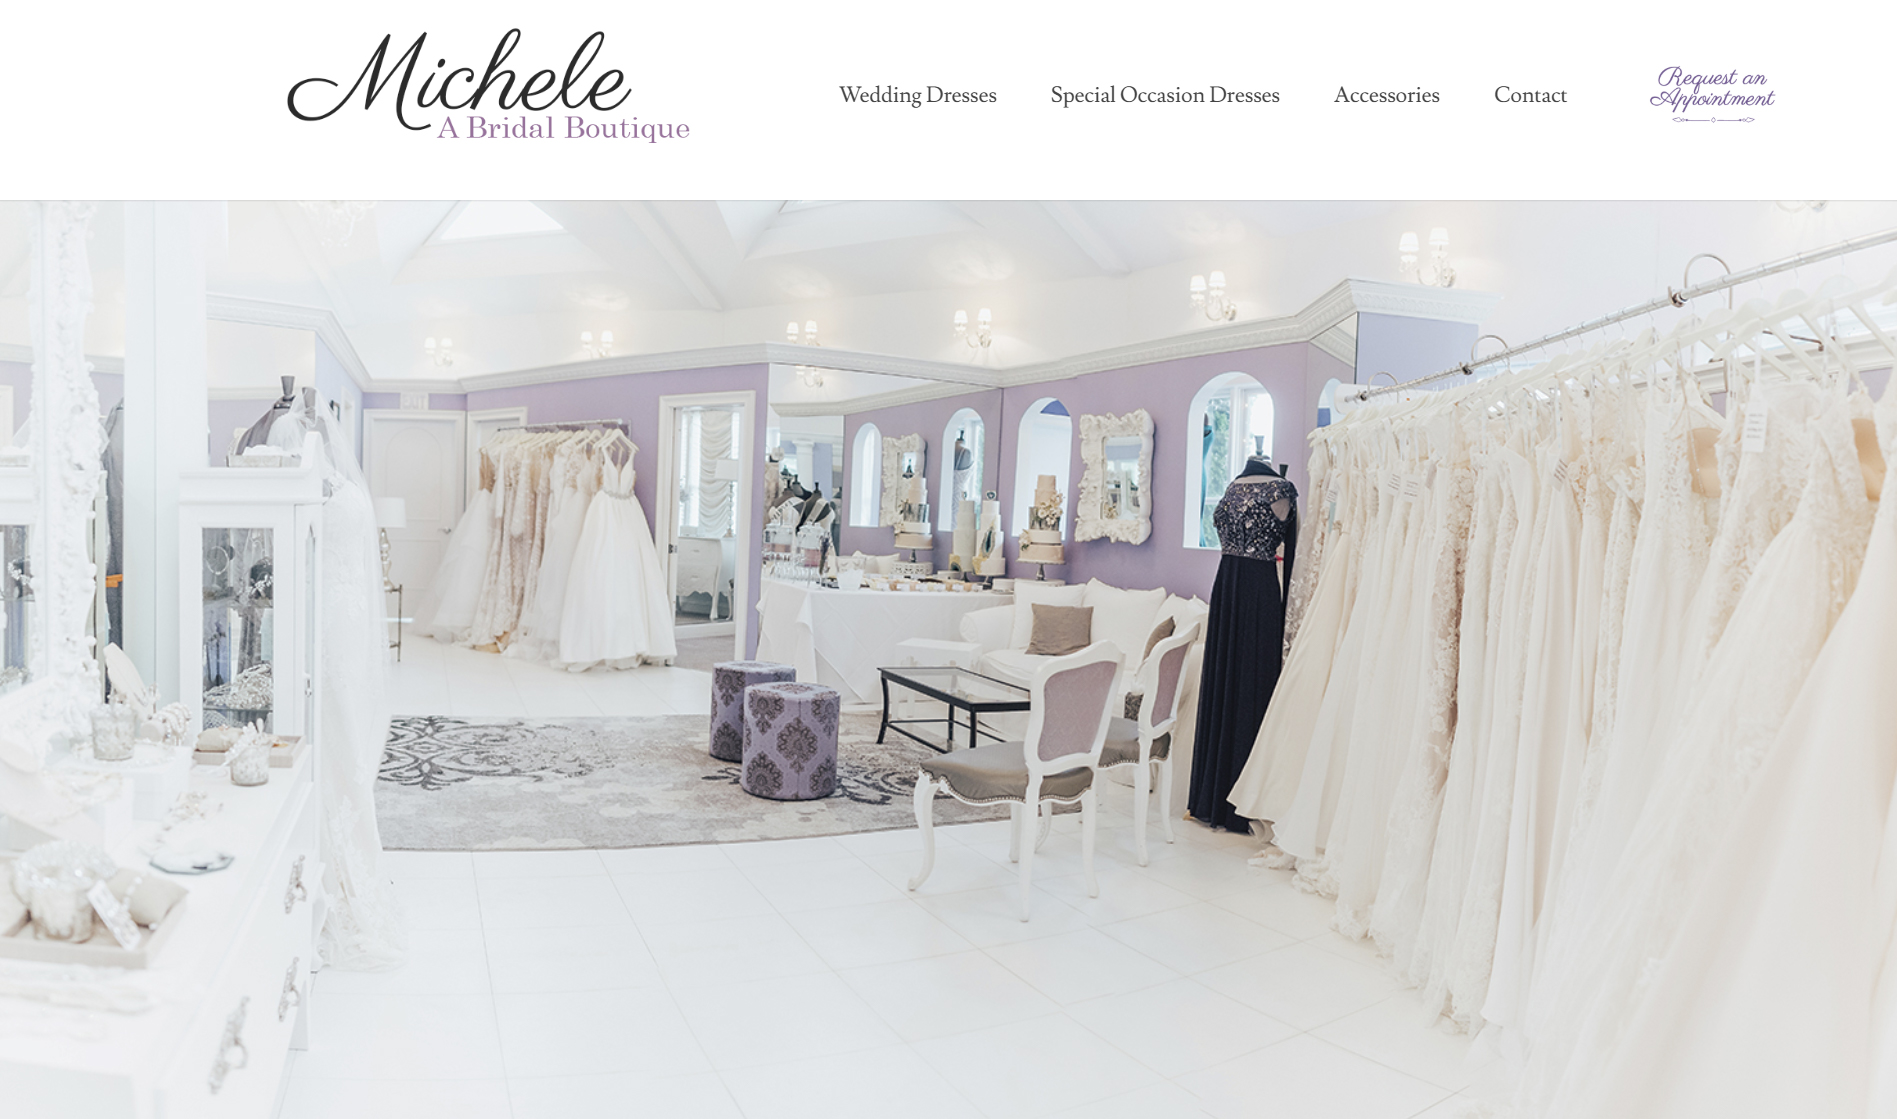 Michele A Bridal Boutique